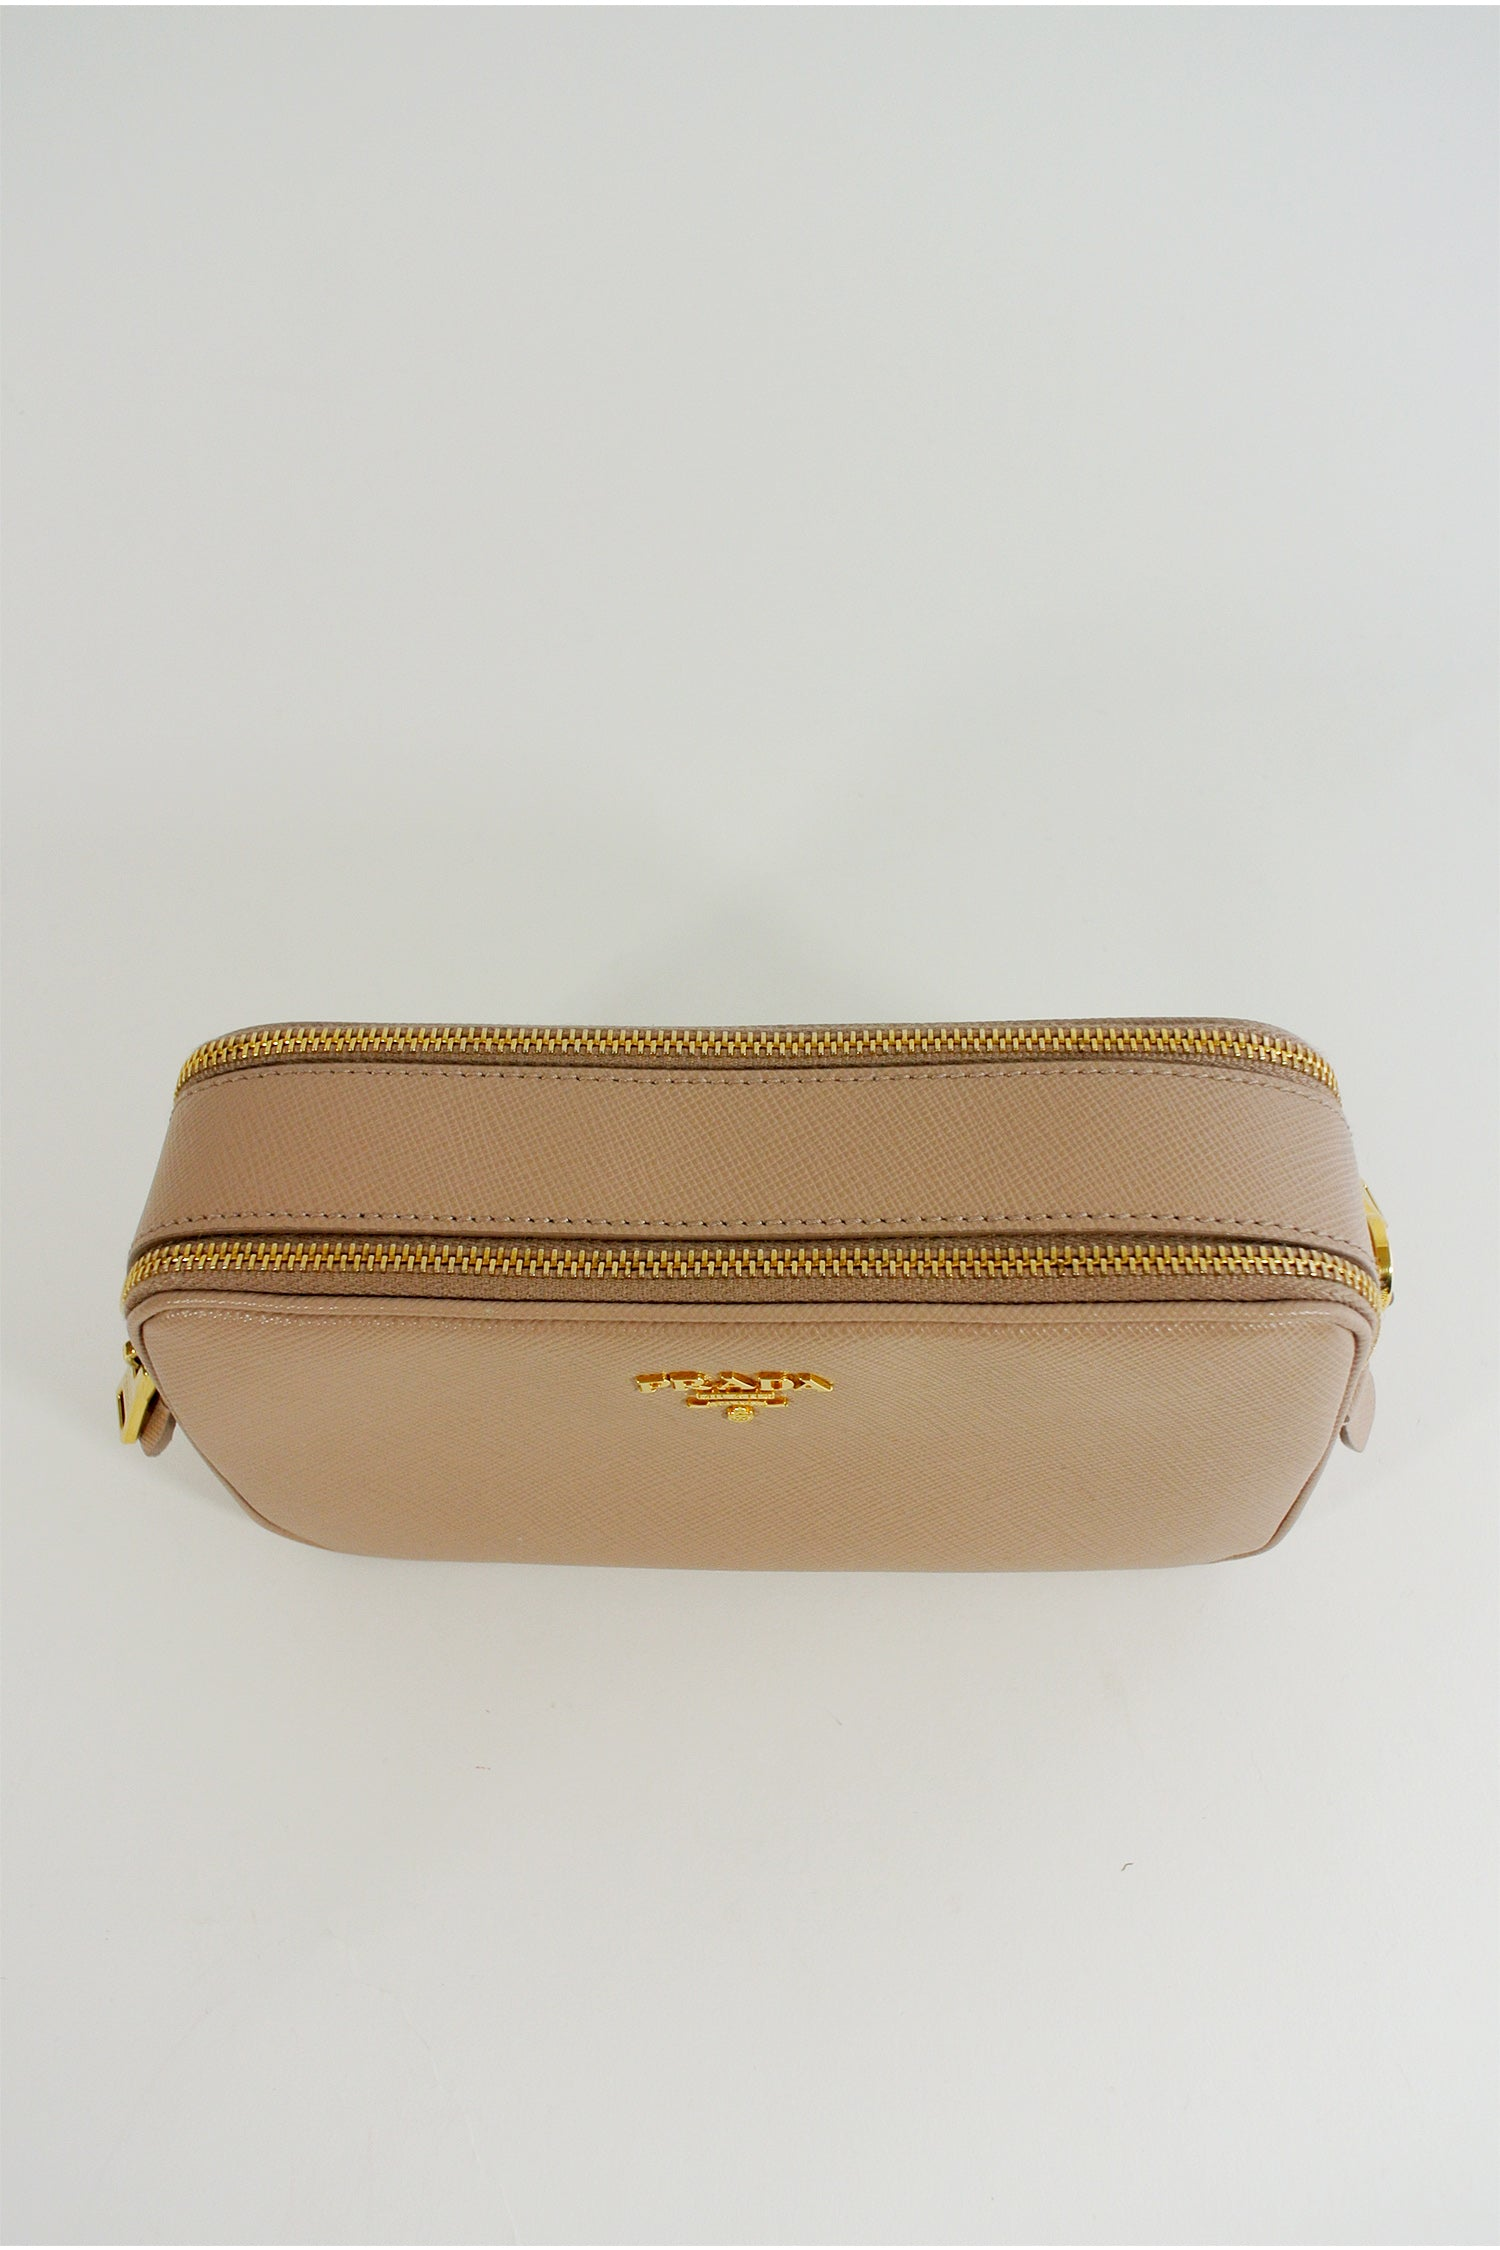 Prada Beige Camera Crossbody Bag